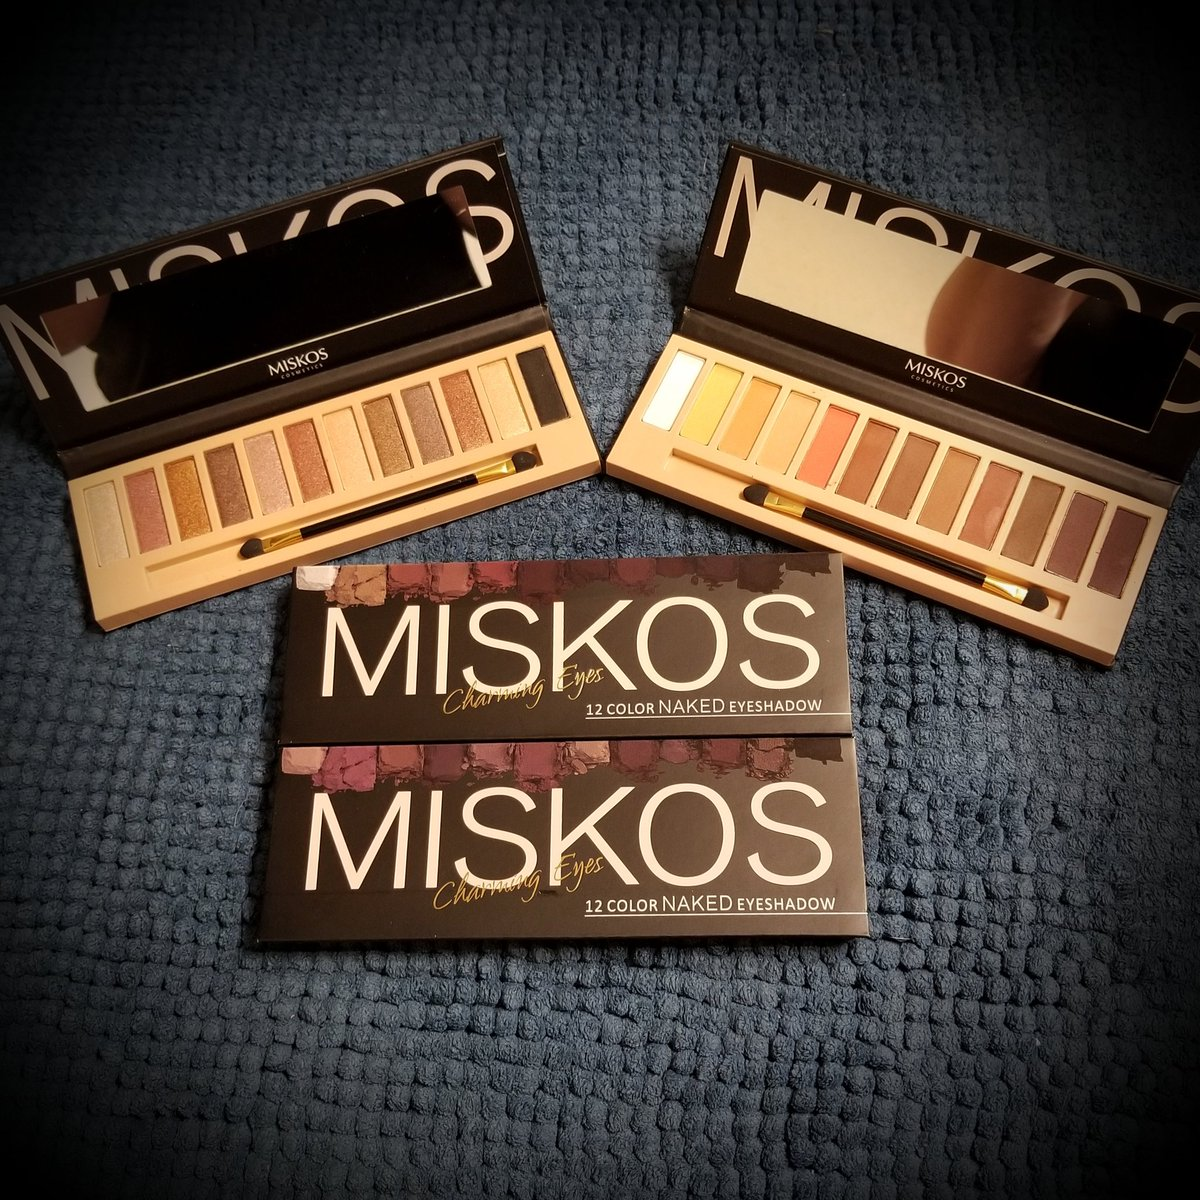 MISKOS Charming Eyes Professional Warm Eyeshadow Makeup Palette 16 eyeshadow colors includes high pigmented shimmer & matte shadows. Blend easy for any look.    #Discountedforreview #MISKOS  #eyeshadowpalet #eyeshadow #makeup #beauty #cosmetics http://www.amazon.com/gp/product/B0753BBF6P…